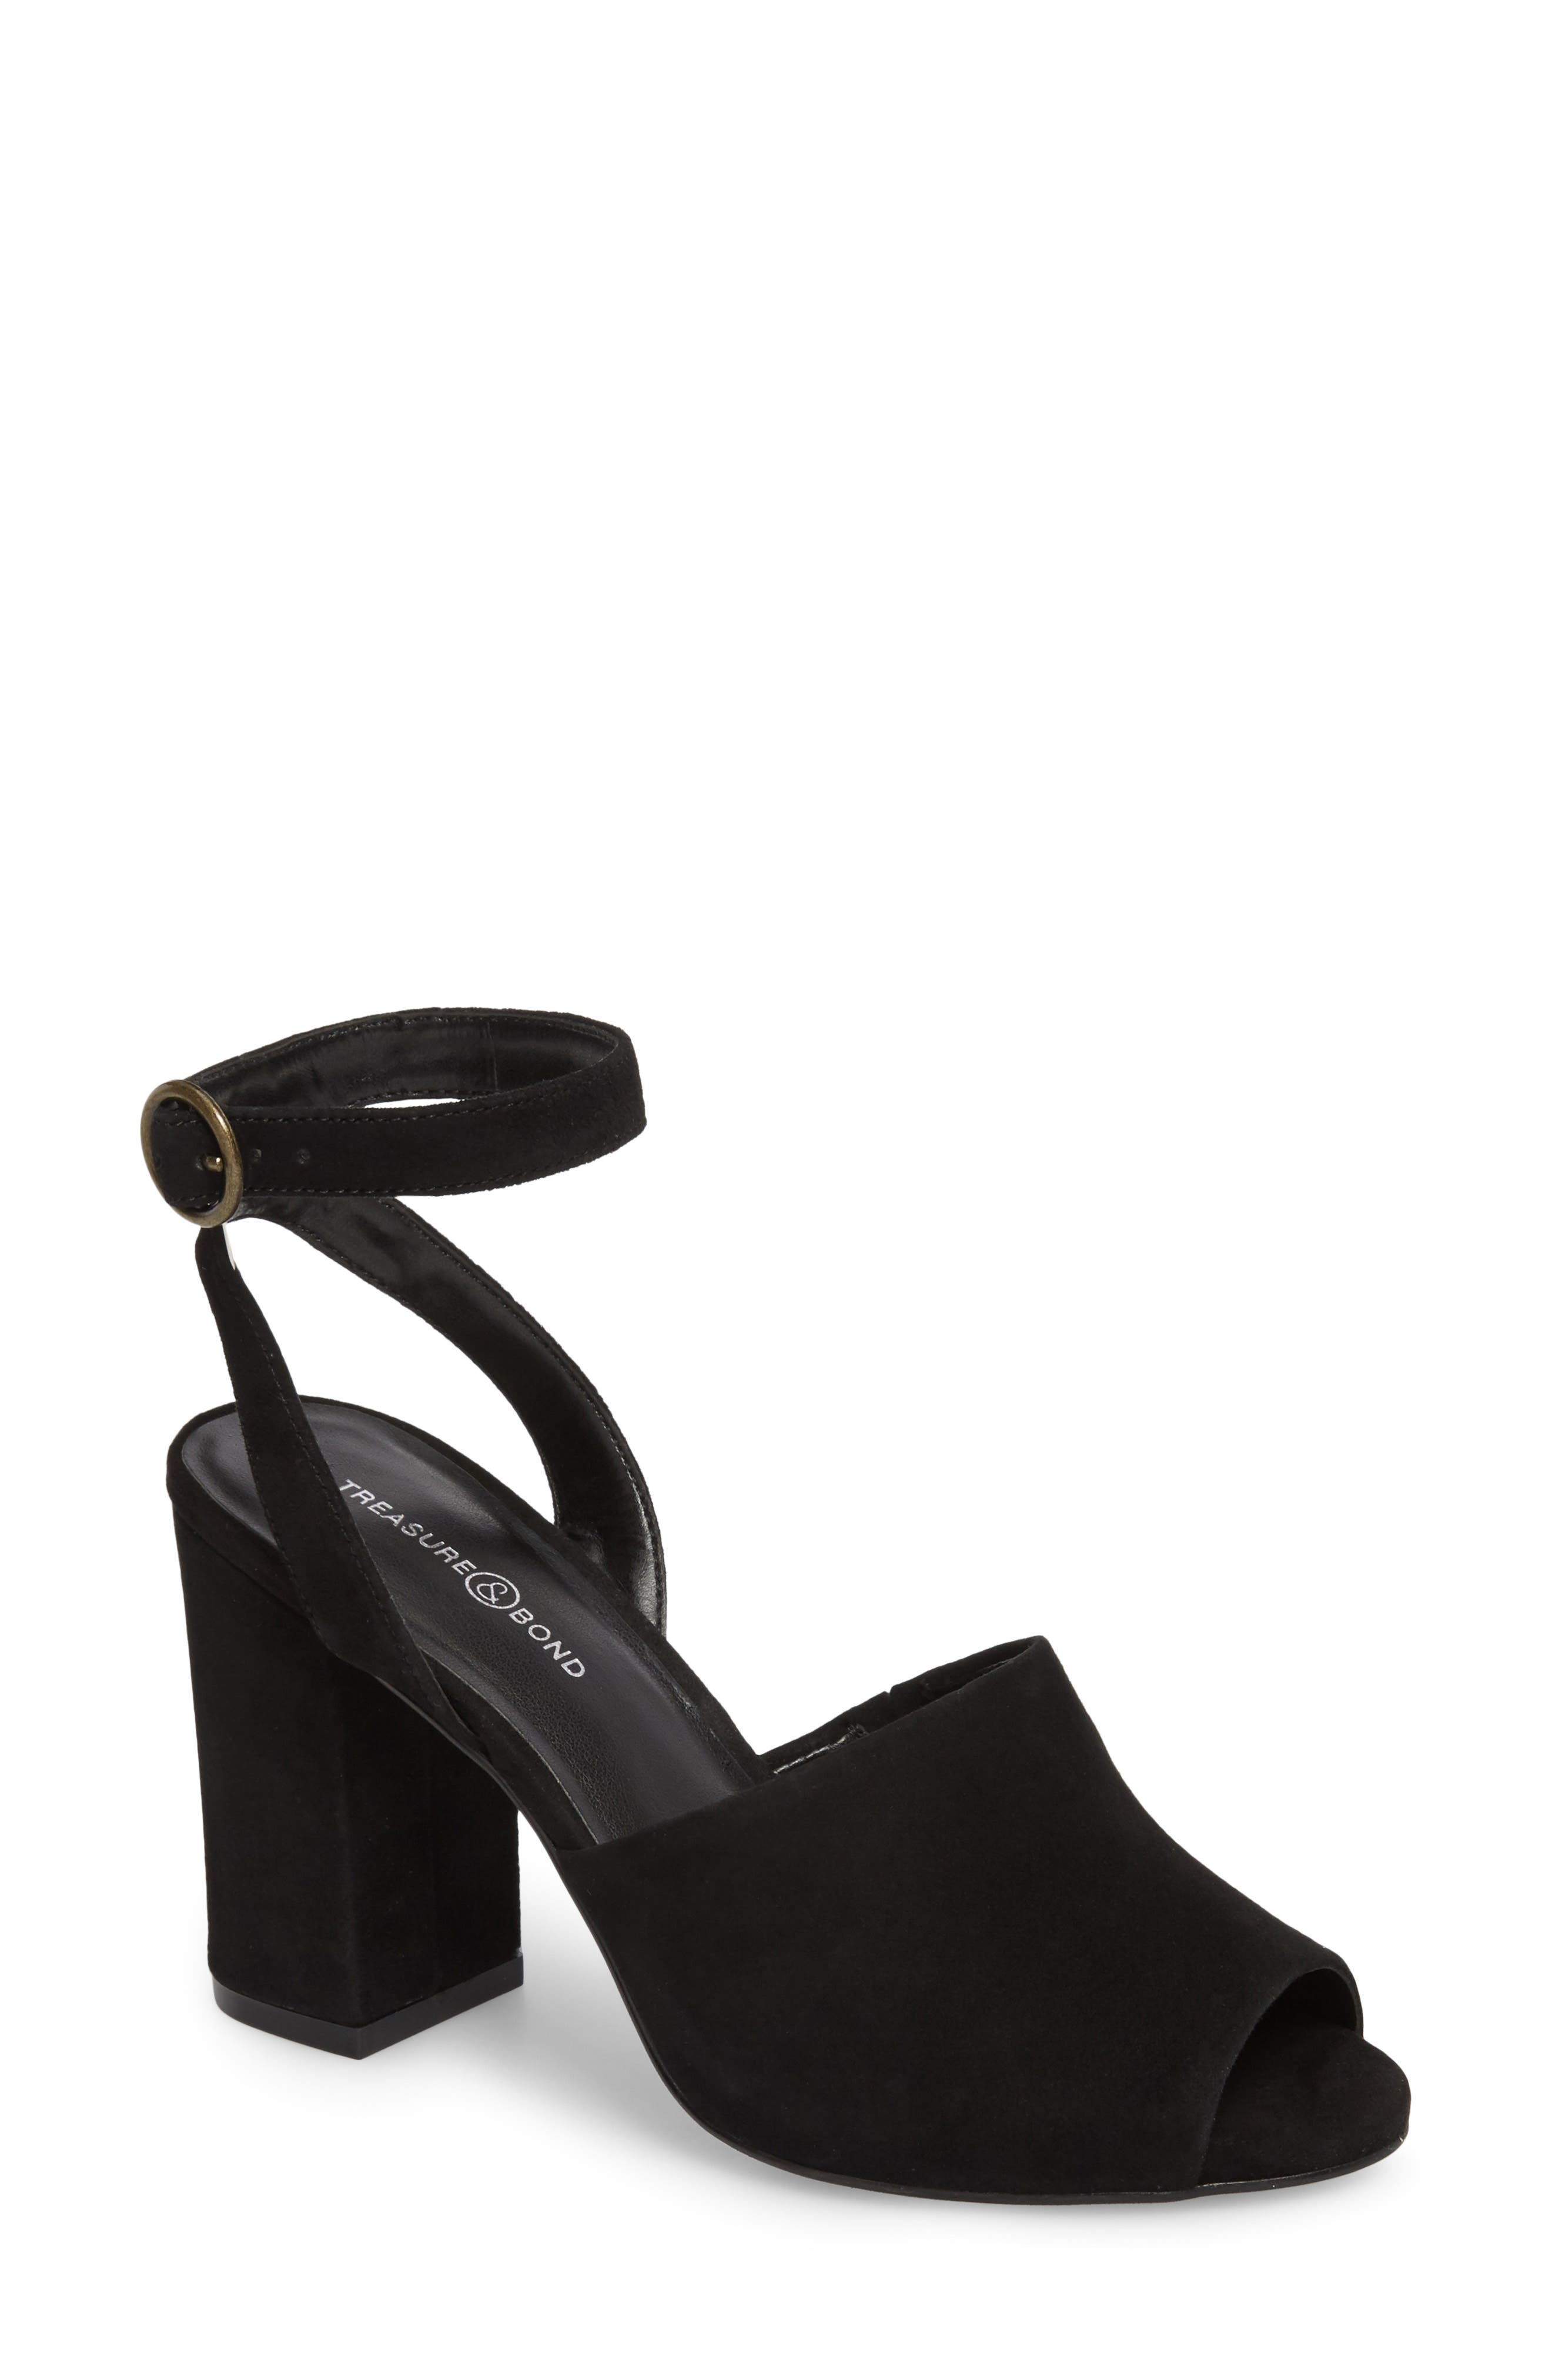 Pipper Block Heel Sandal,                             Main thumbnail 1, color,                             BLACK SUEDE